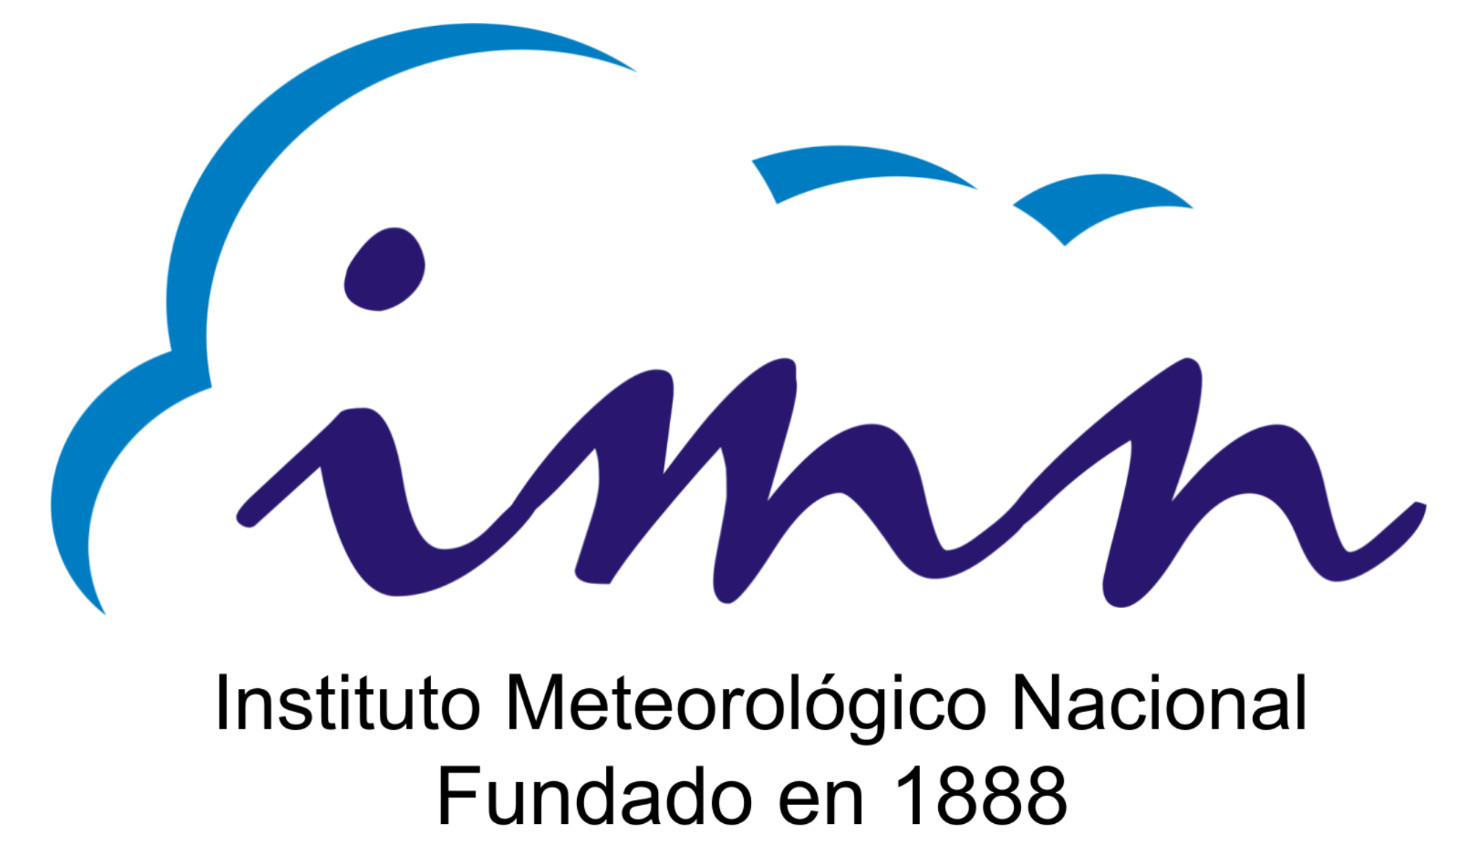 Instituto Meteorologico National de Costa Rica